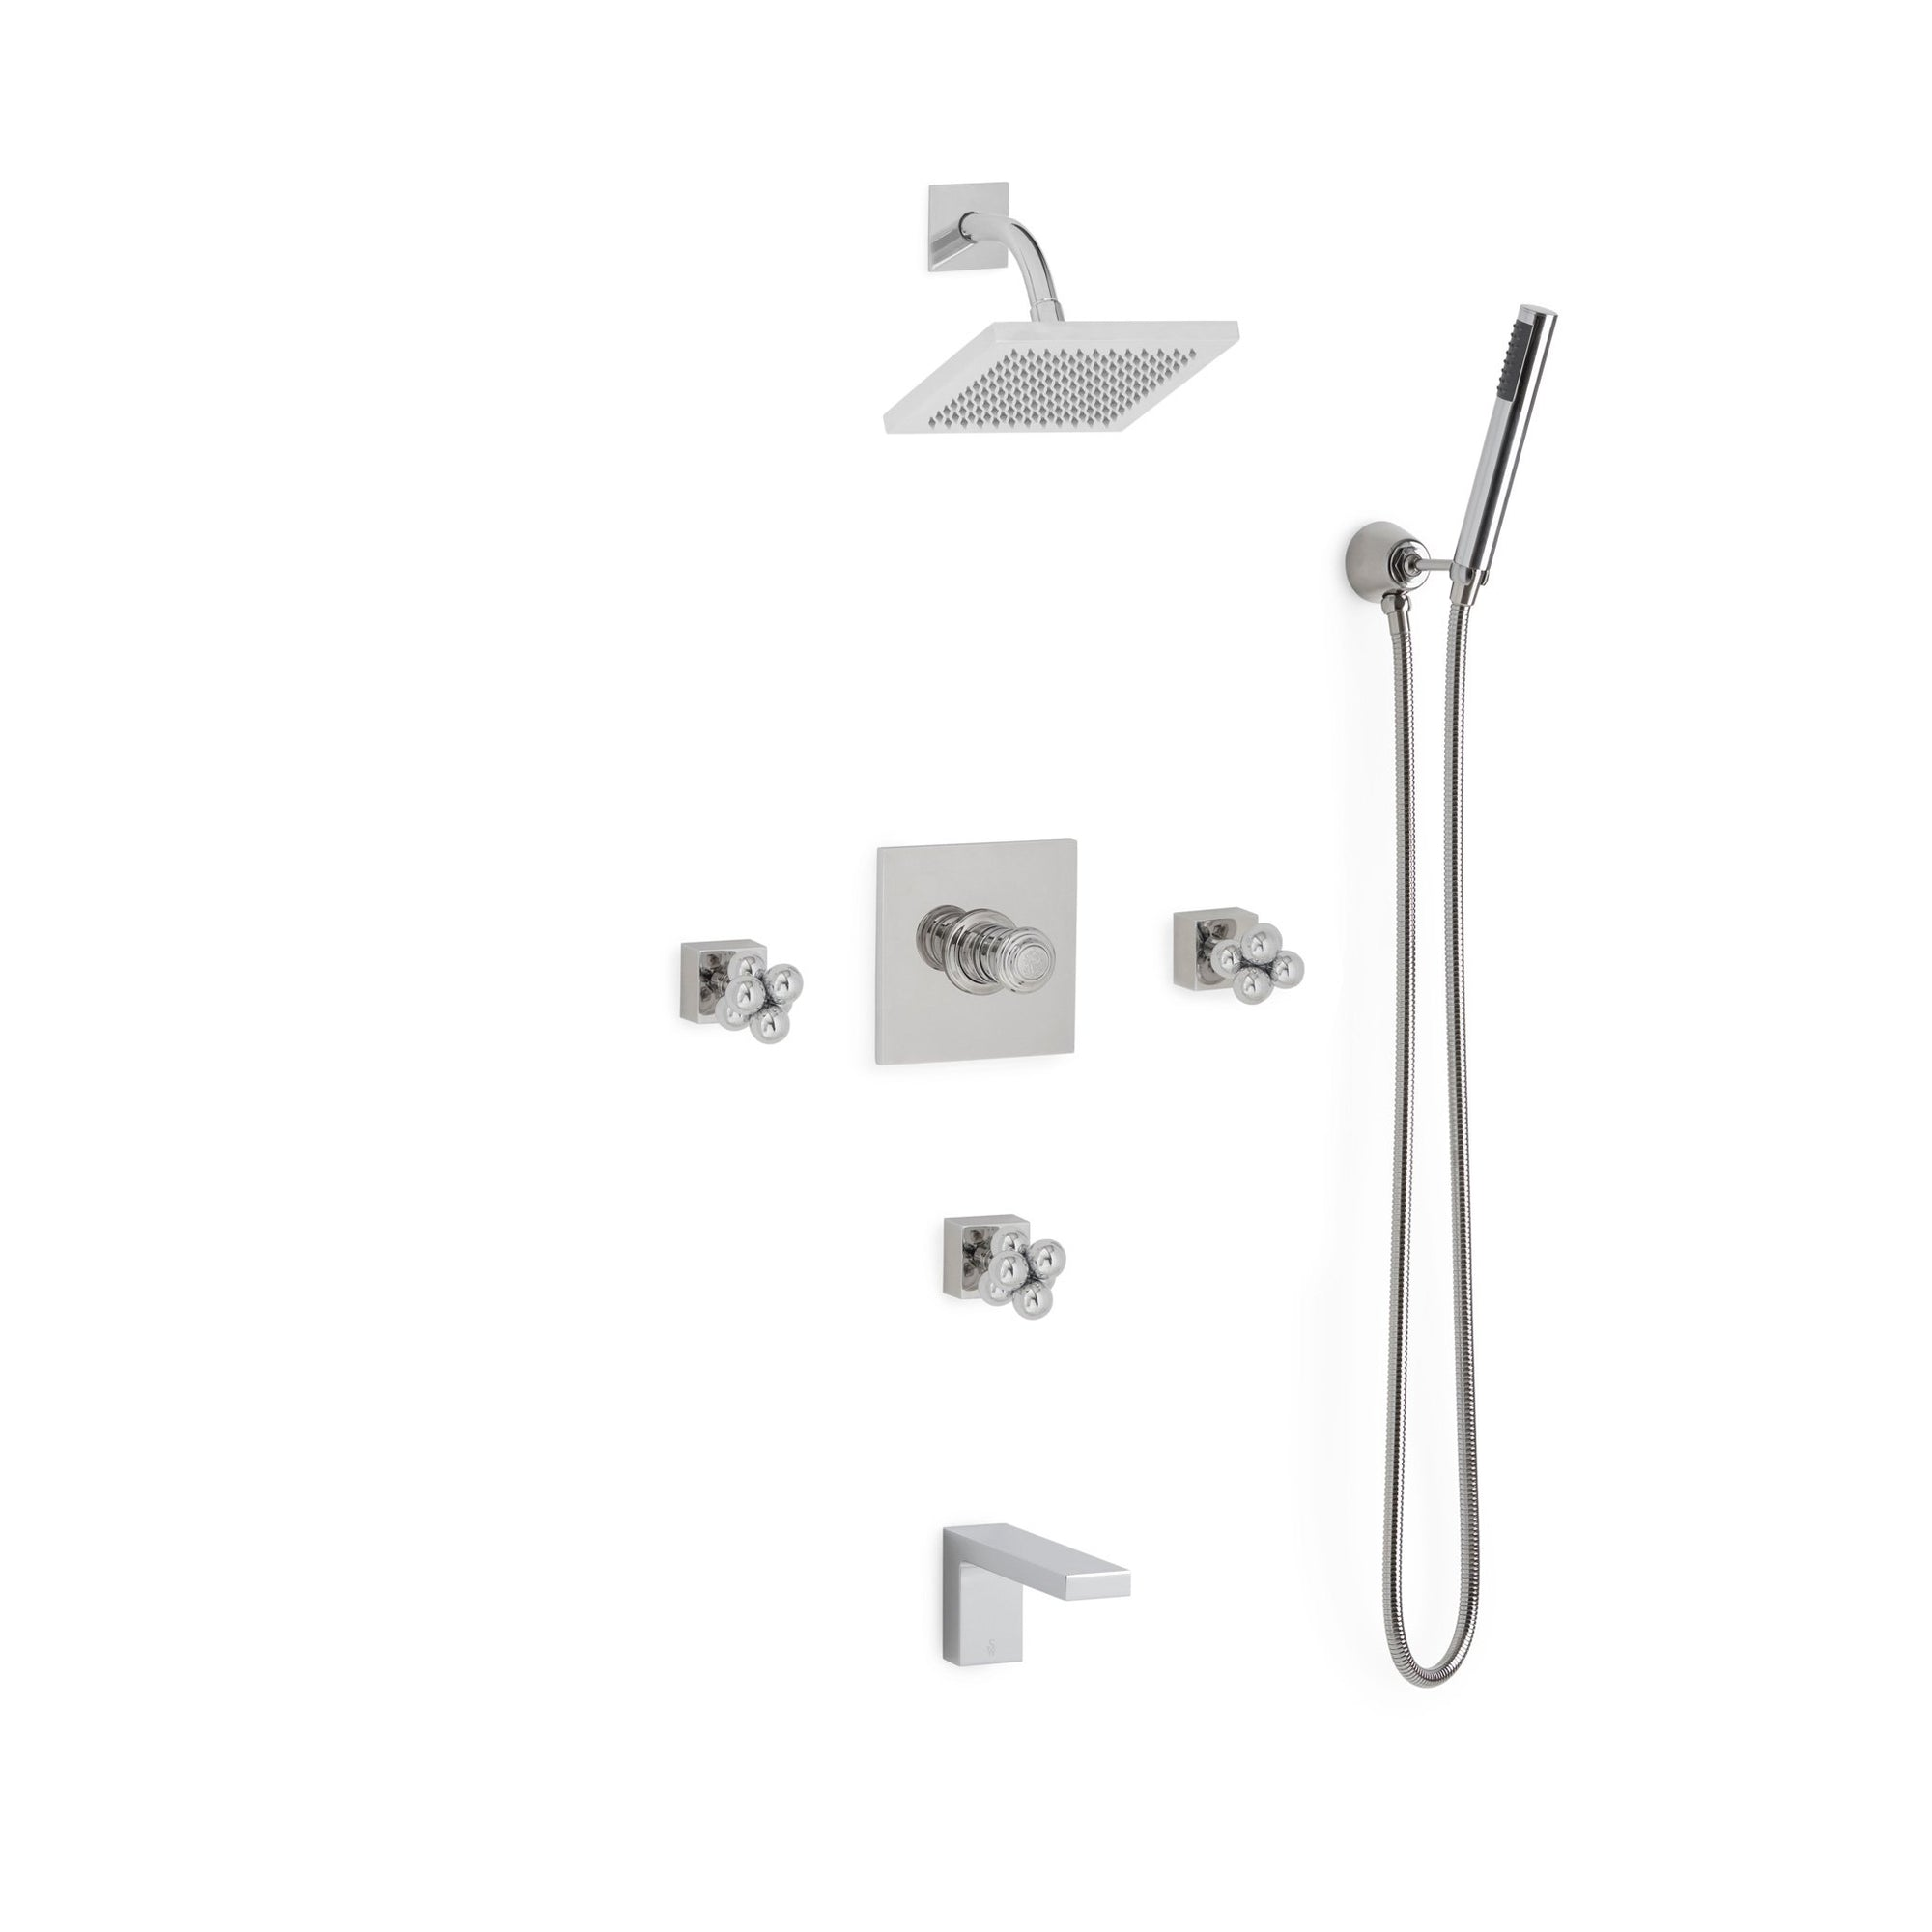 Sherle Wagner International Molecule Modern High Flow Thermostatic Shower and Tub System in Polished Chrome metal finish